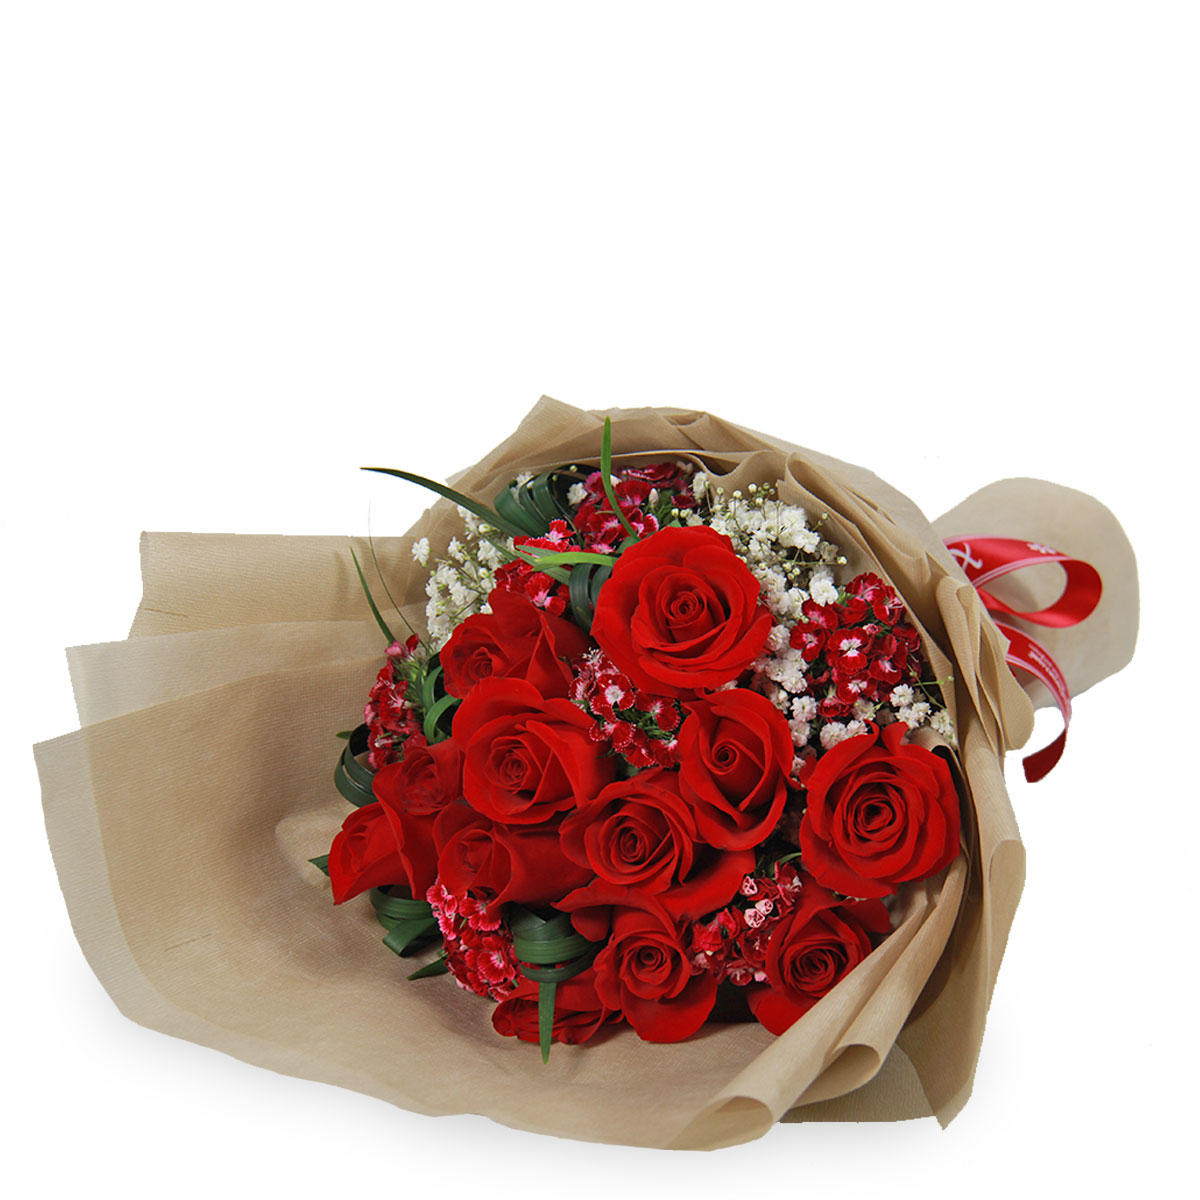 bq1342 MESMERIZE ROMANTICALLY Deluxe Red roses bq